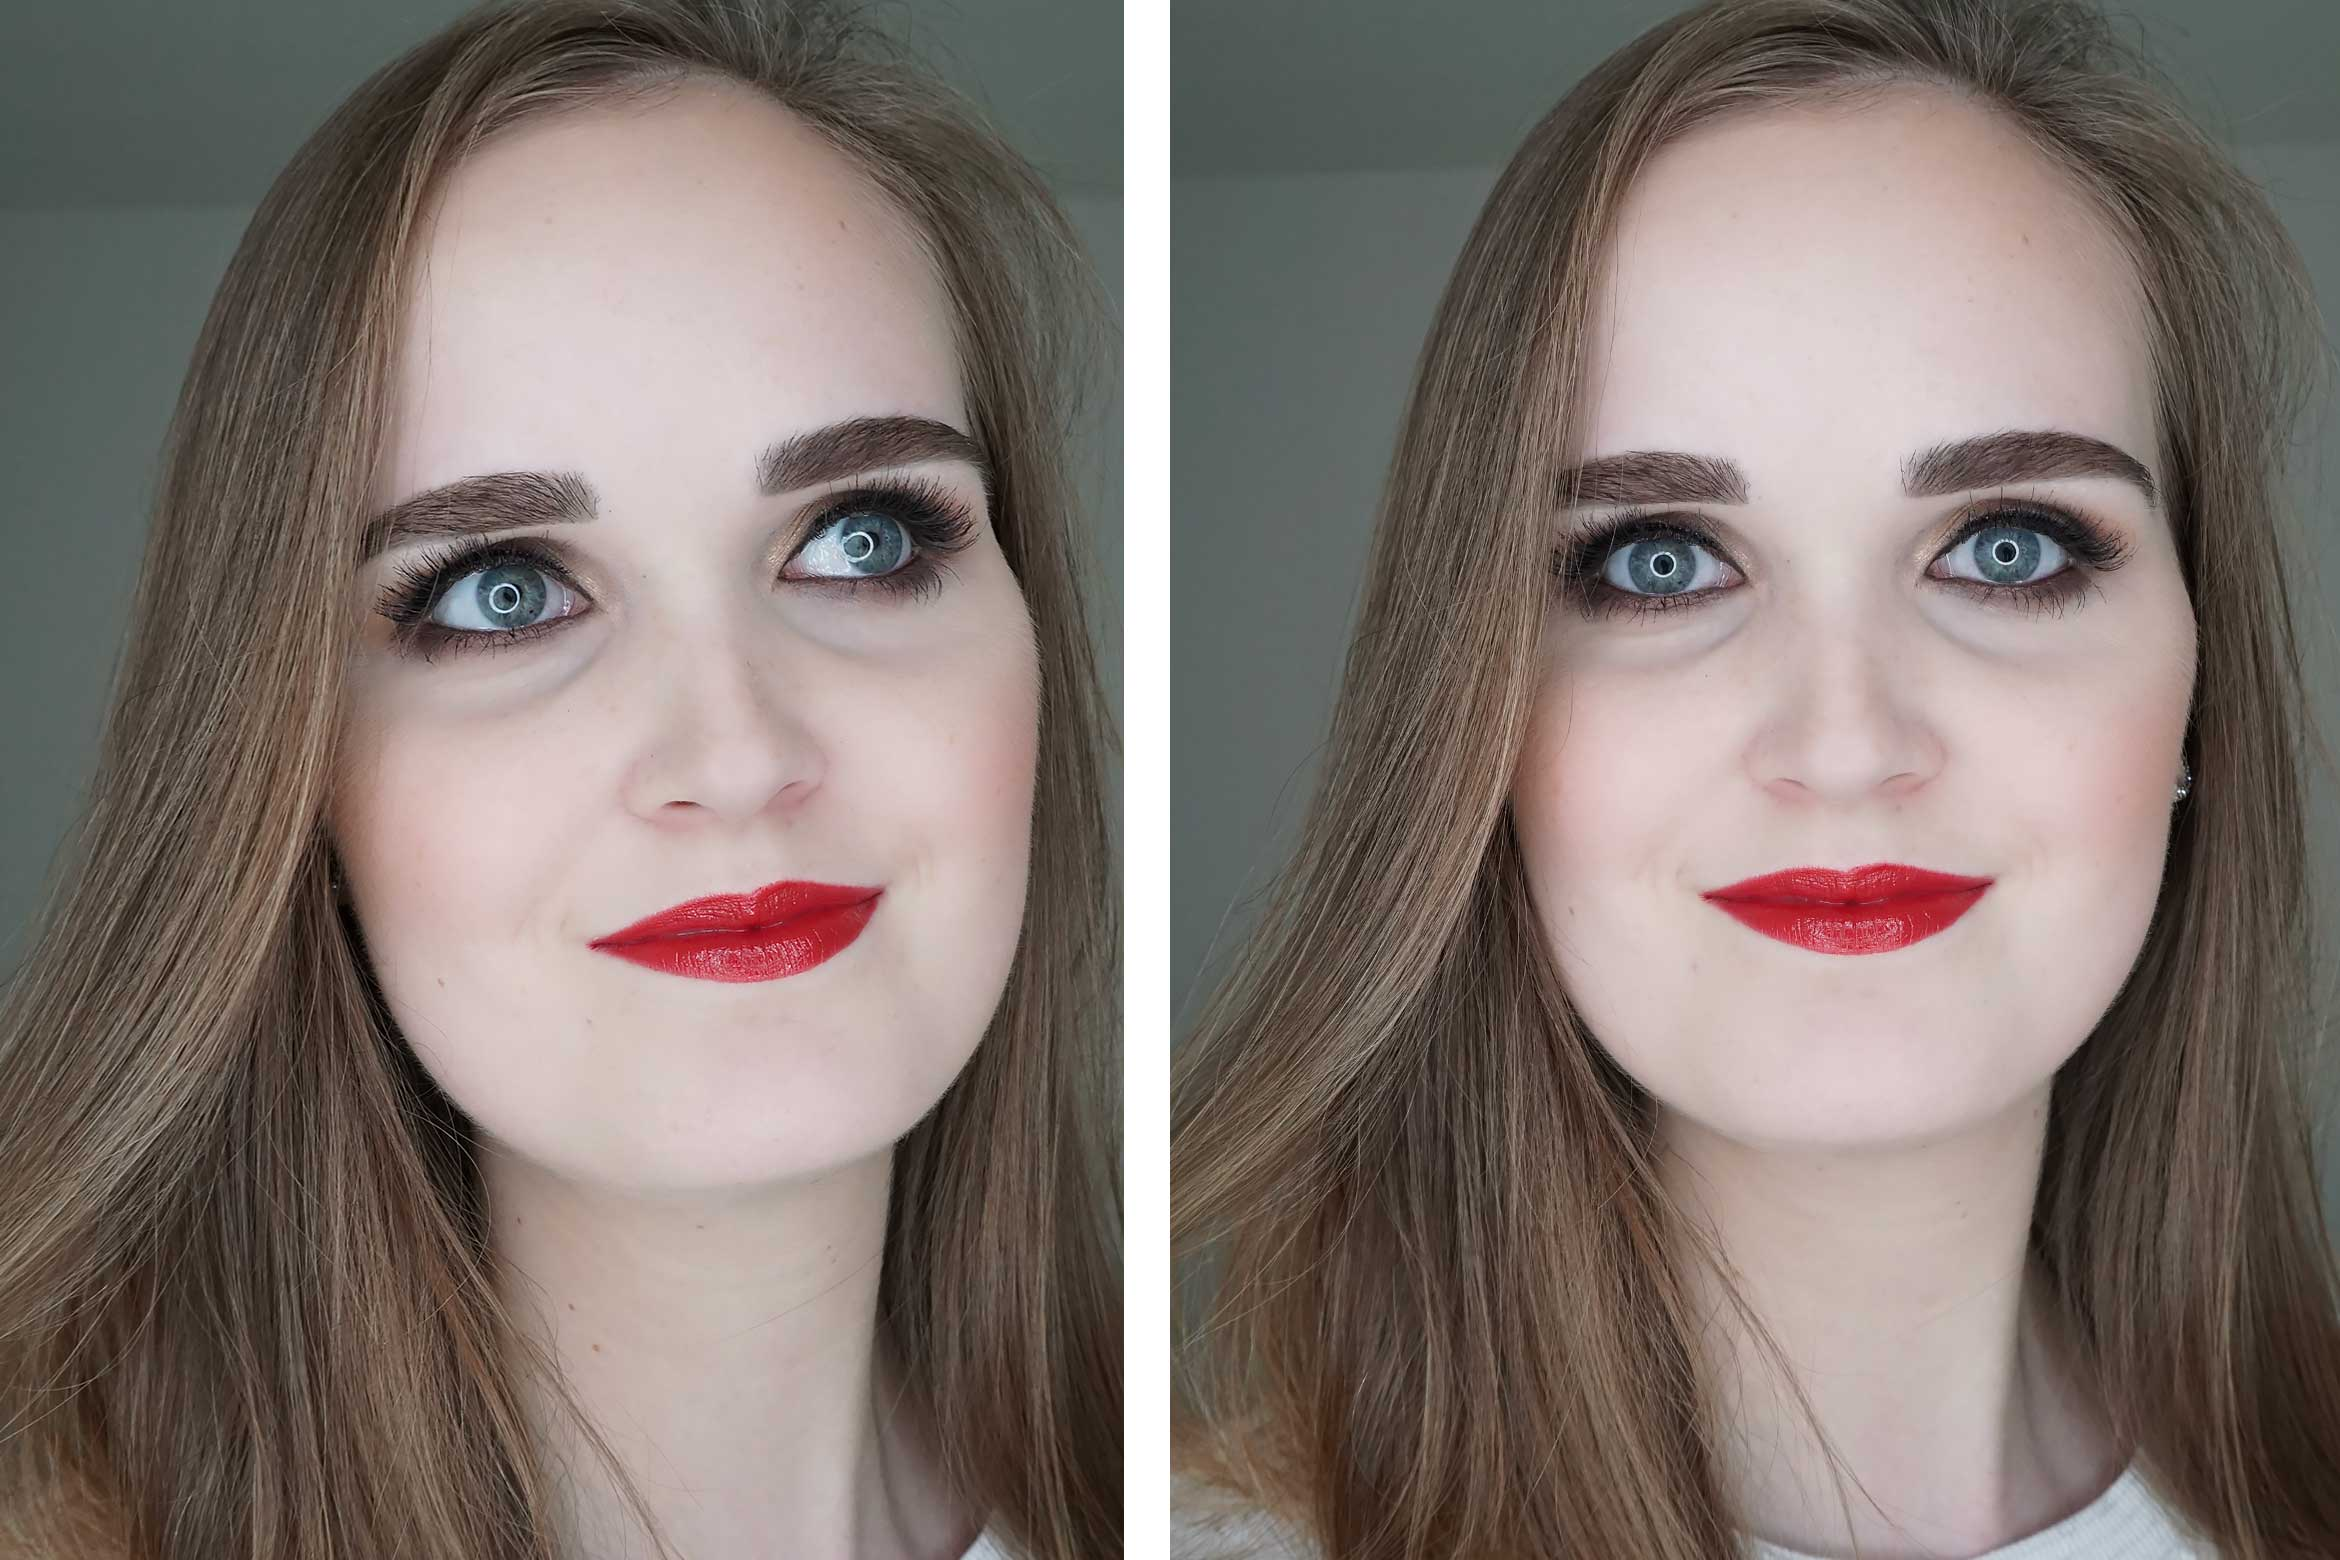 make-up-factory-tailored-lashes-review-deep-set-eyes-look